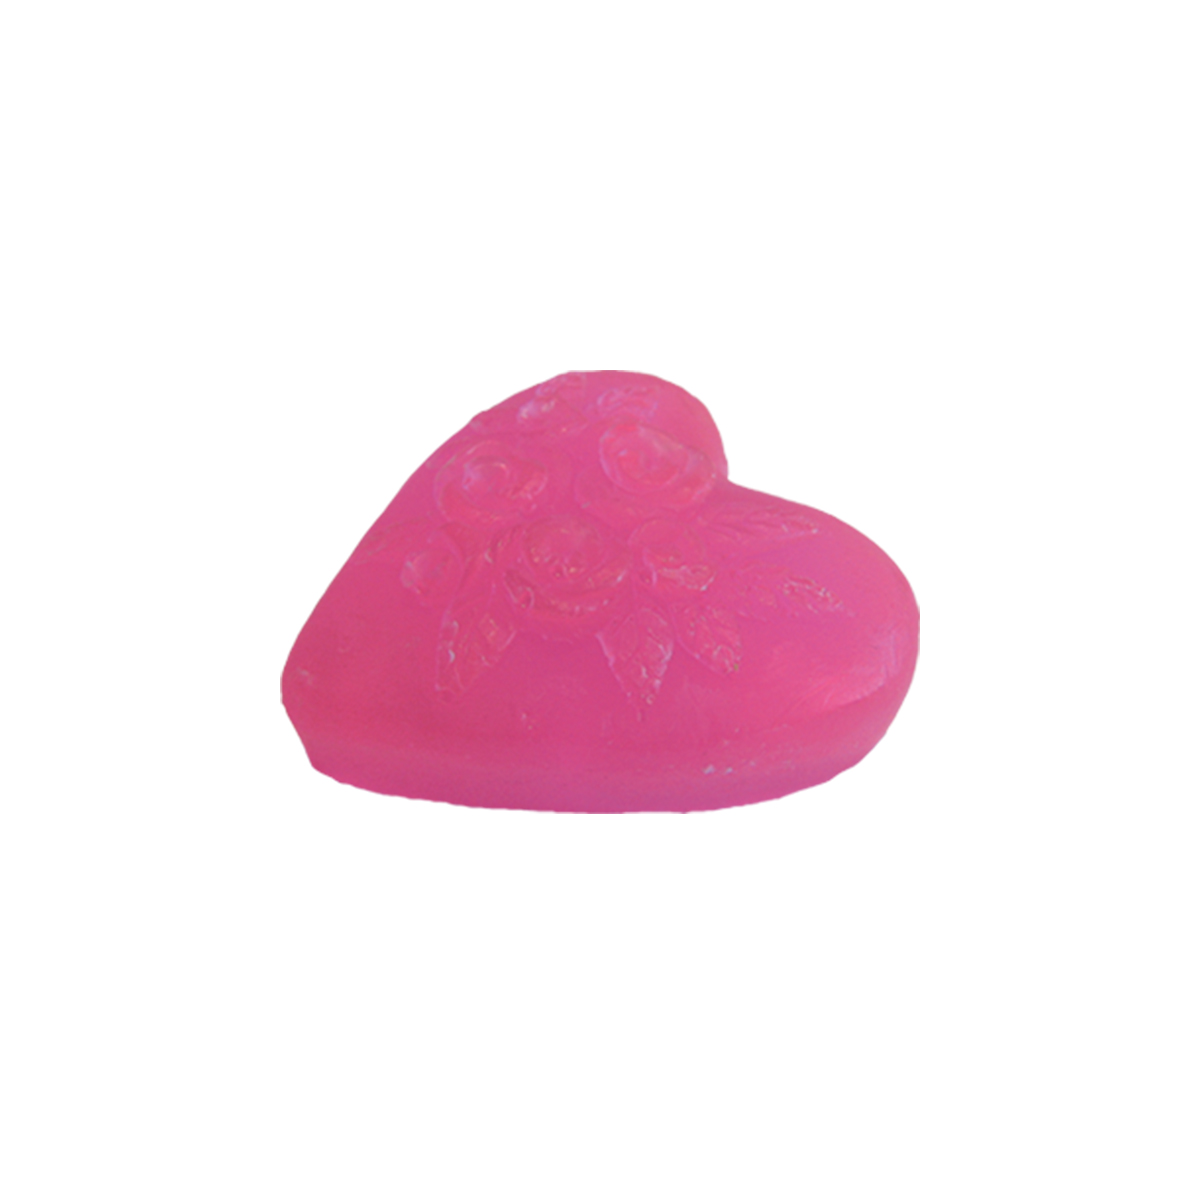 "Natural Glycerine Soap ""HEART FROM THE VALLEY OF ROSES"" 85 g."